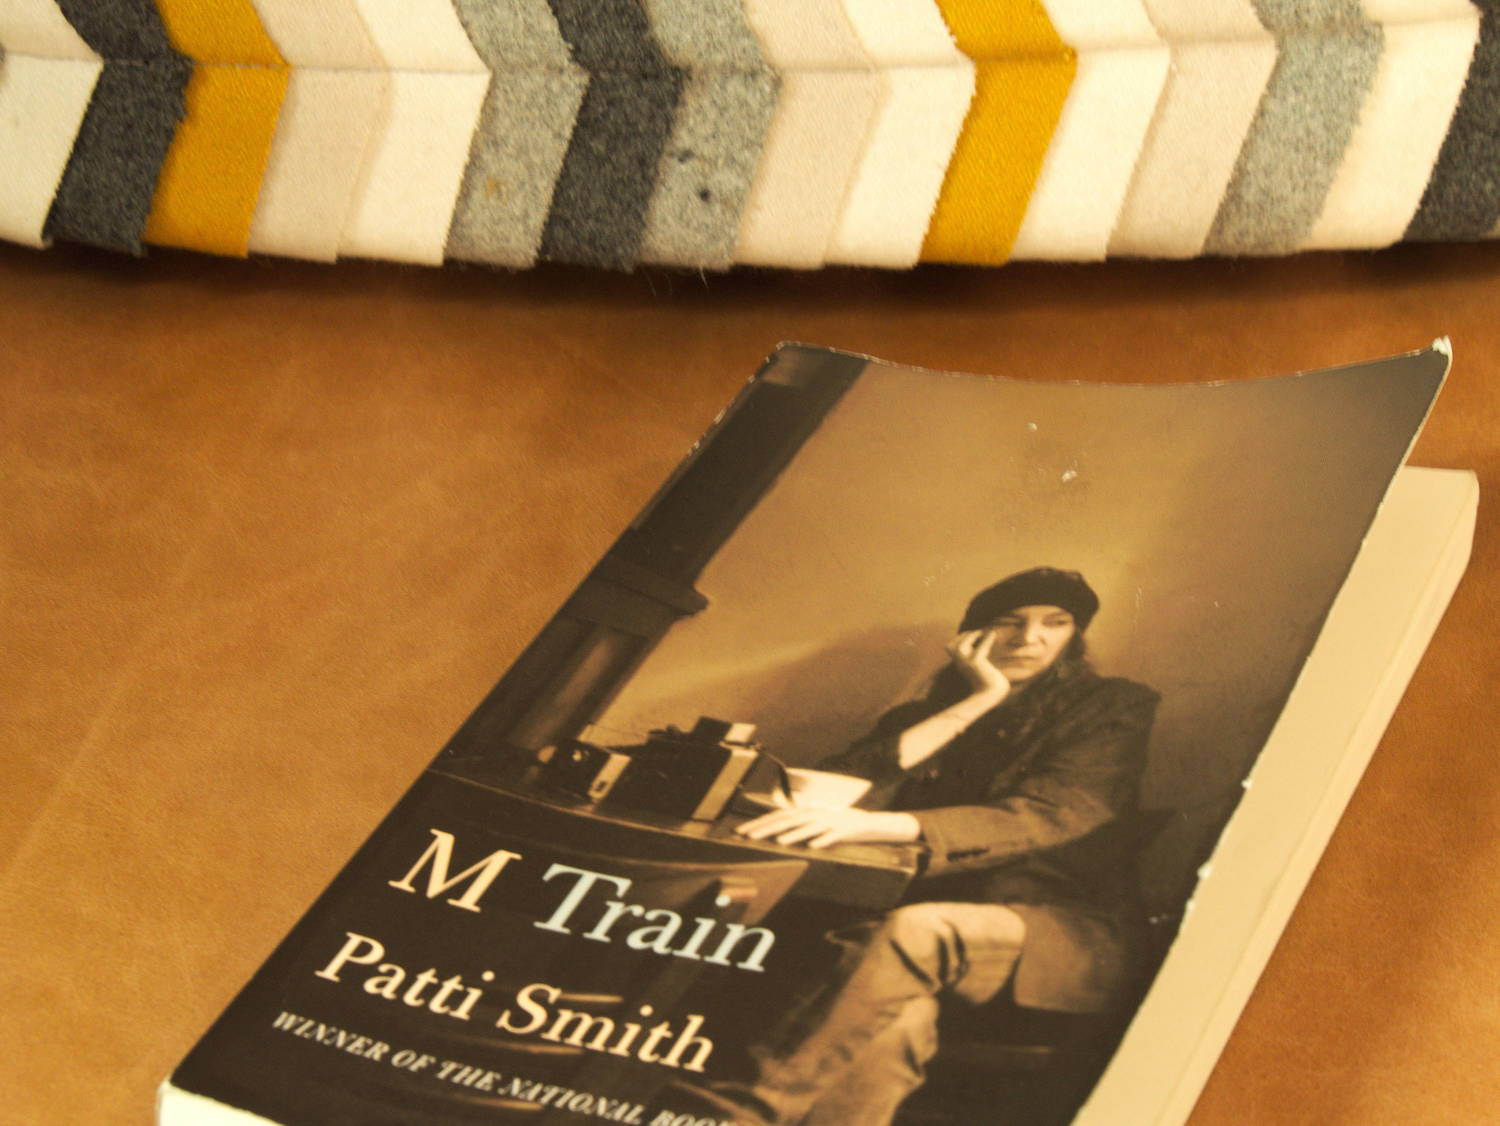 patti smith s m train satu adam in m train i found that smith has captured well the original everyday moments and especially those moments when you feel present and like ldquohomerdquo